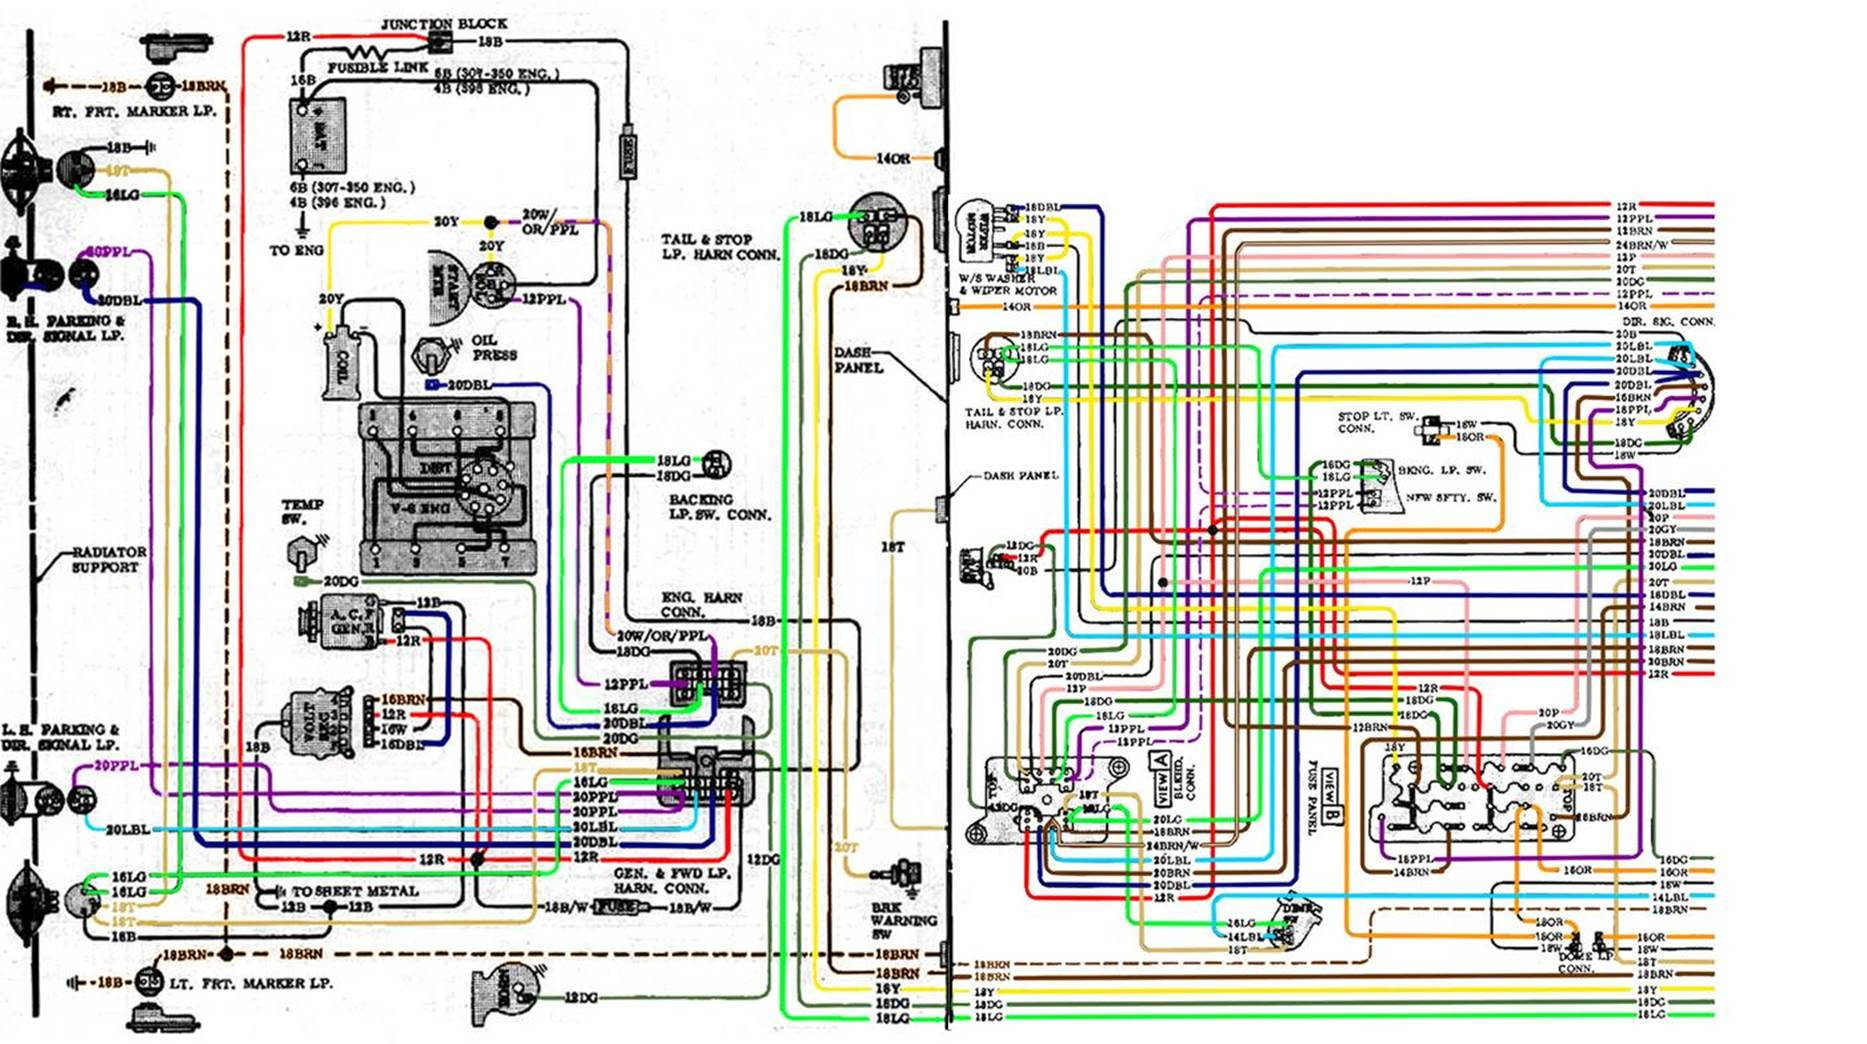 67 72 chevy wiring diagram rh outintheshop com 1967 VW Bug Wiring-Diagram  1967 Chevy II Wiring Diagram